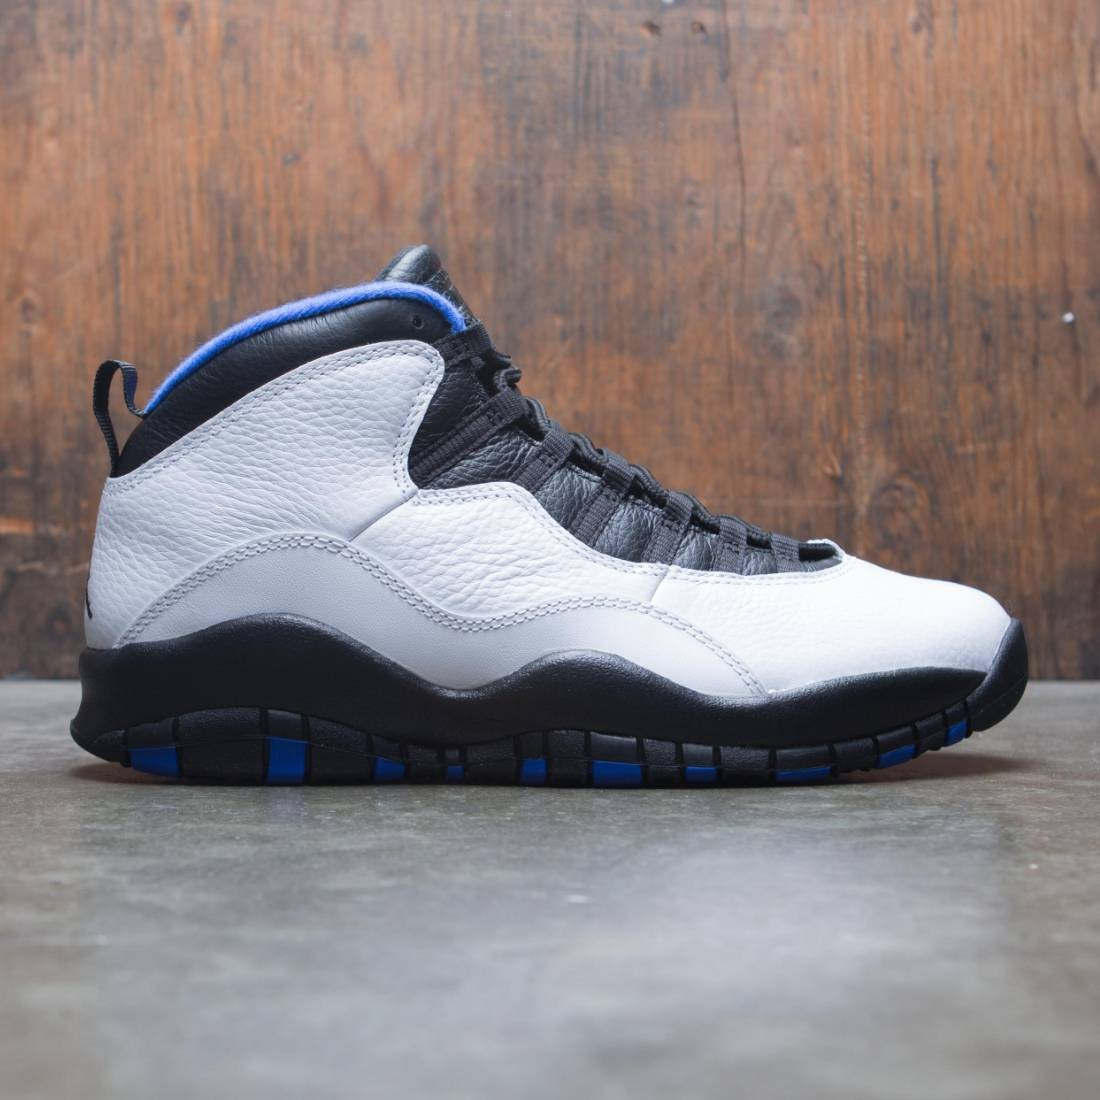 Air Jordan 10 Retro Men (white / black-royal blue-metallic silver)